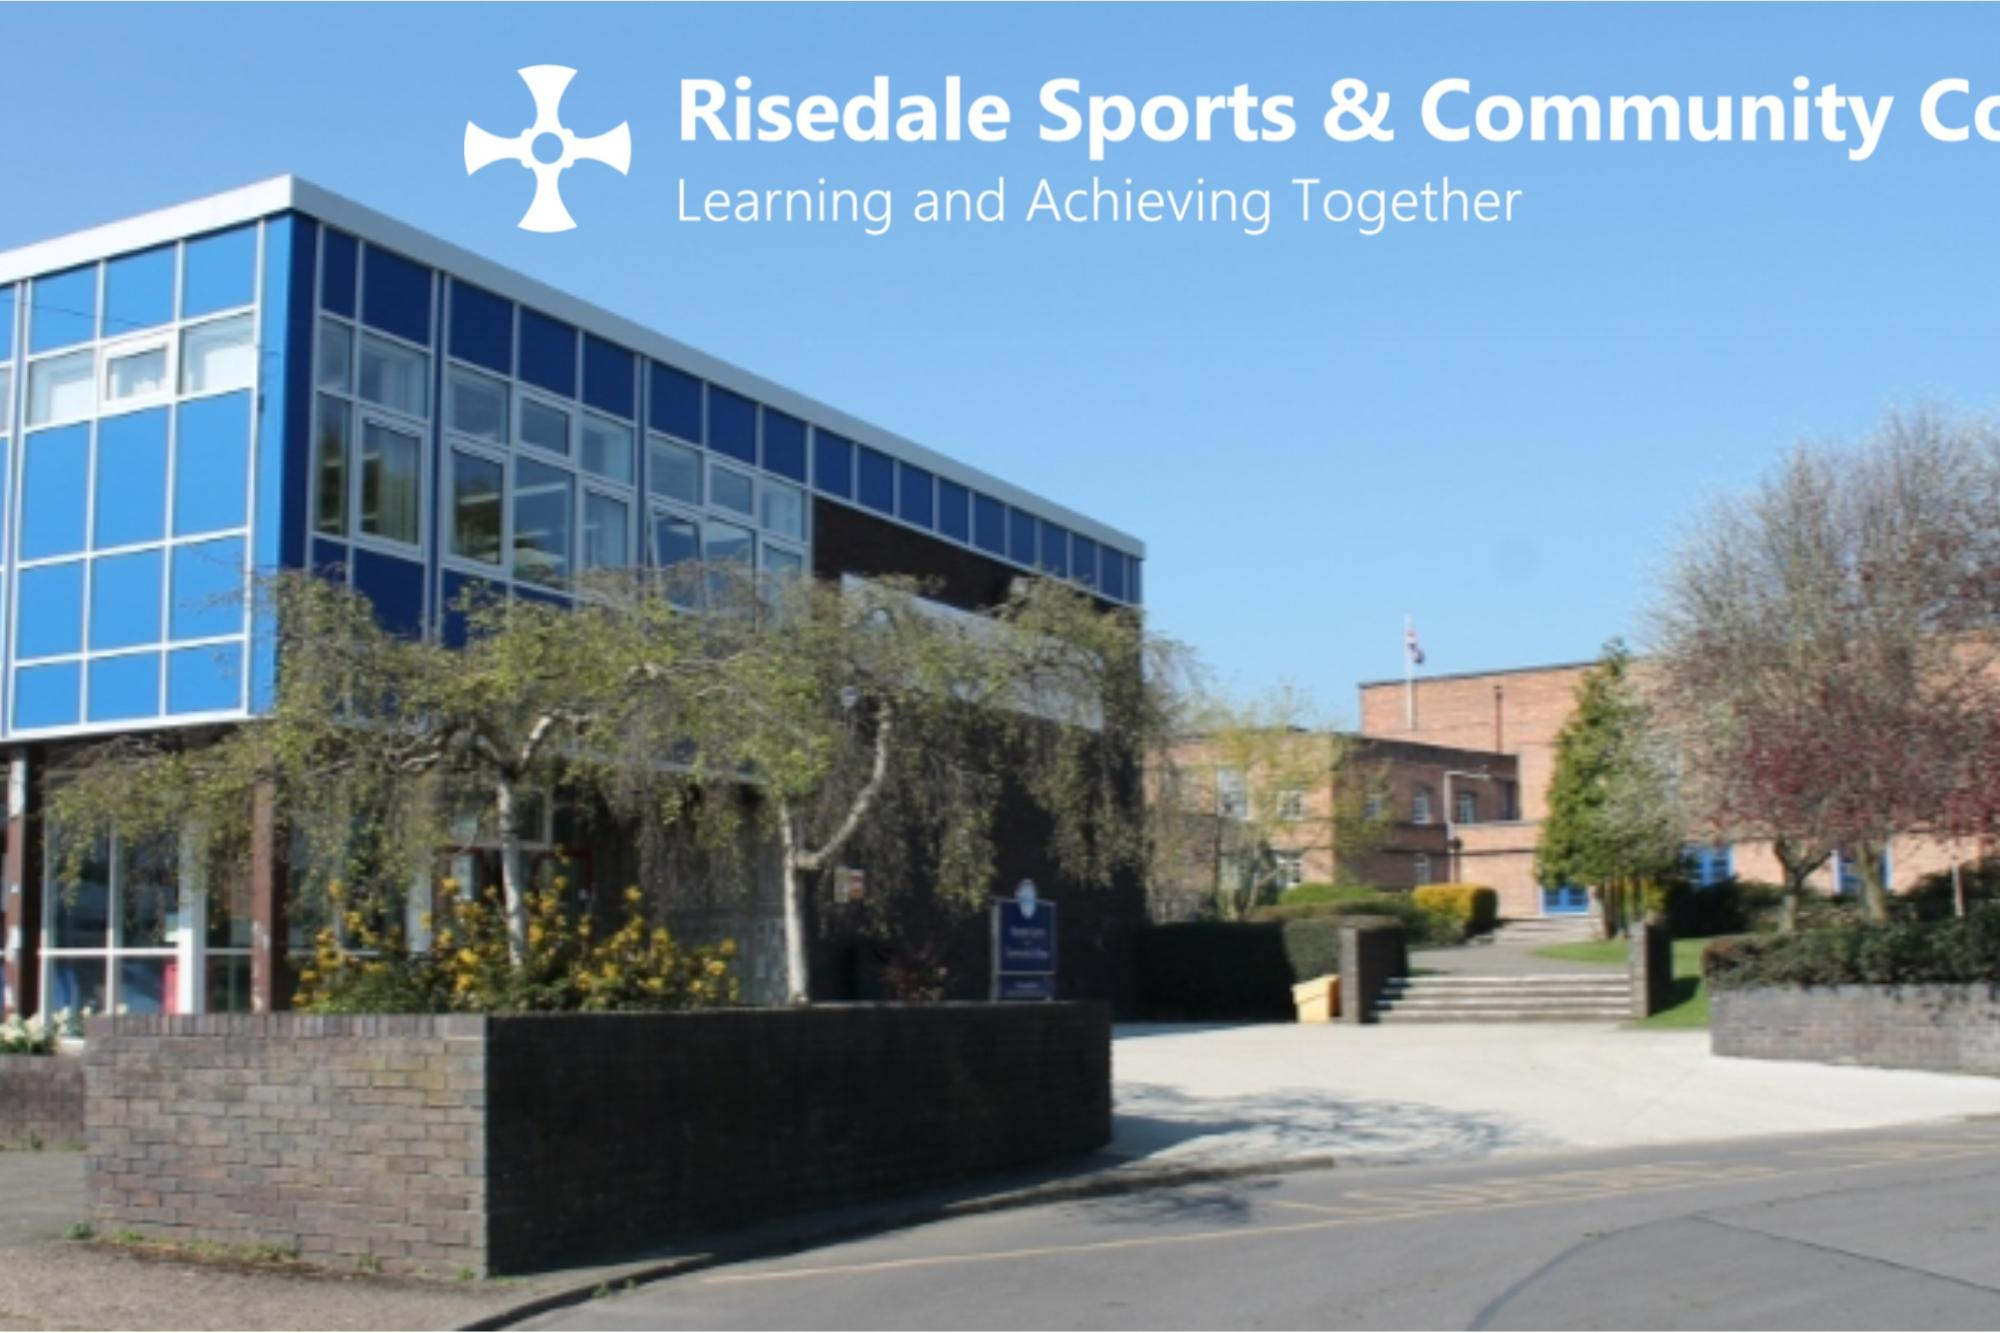 Risedale School (c) Risedale Sports and Community College